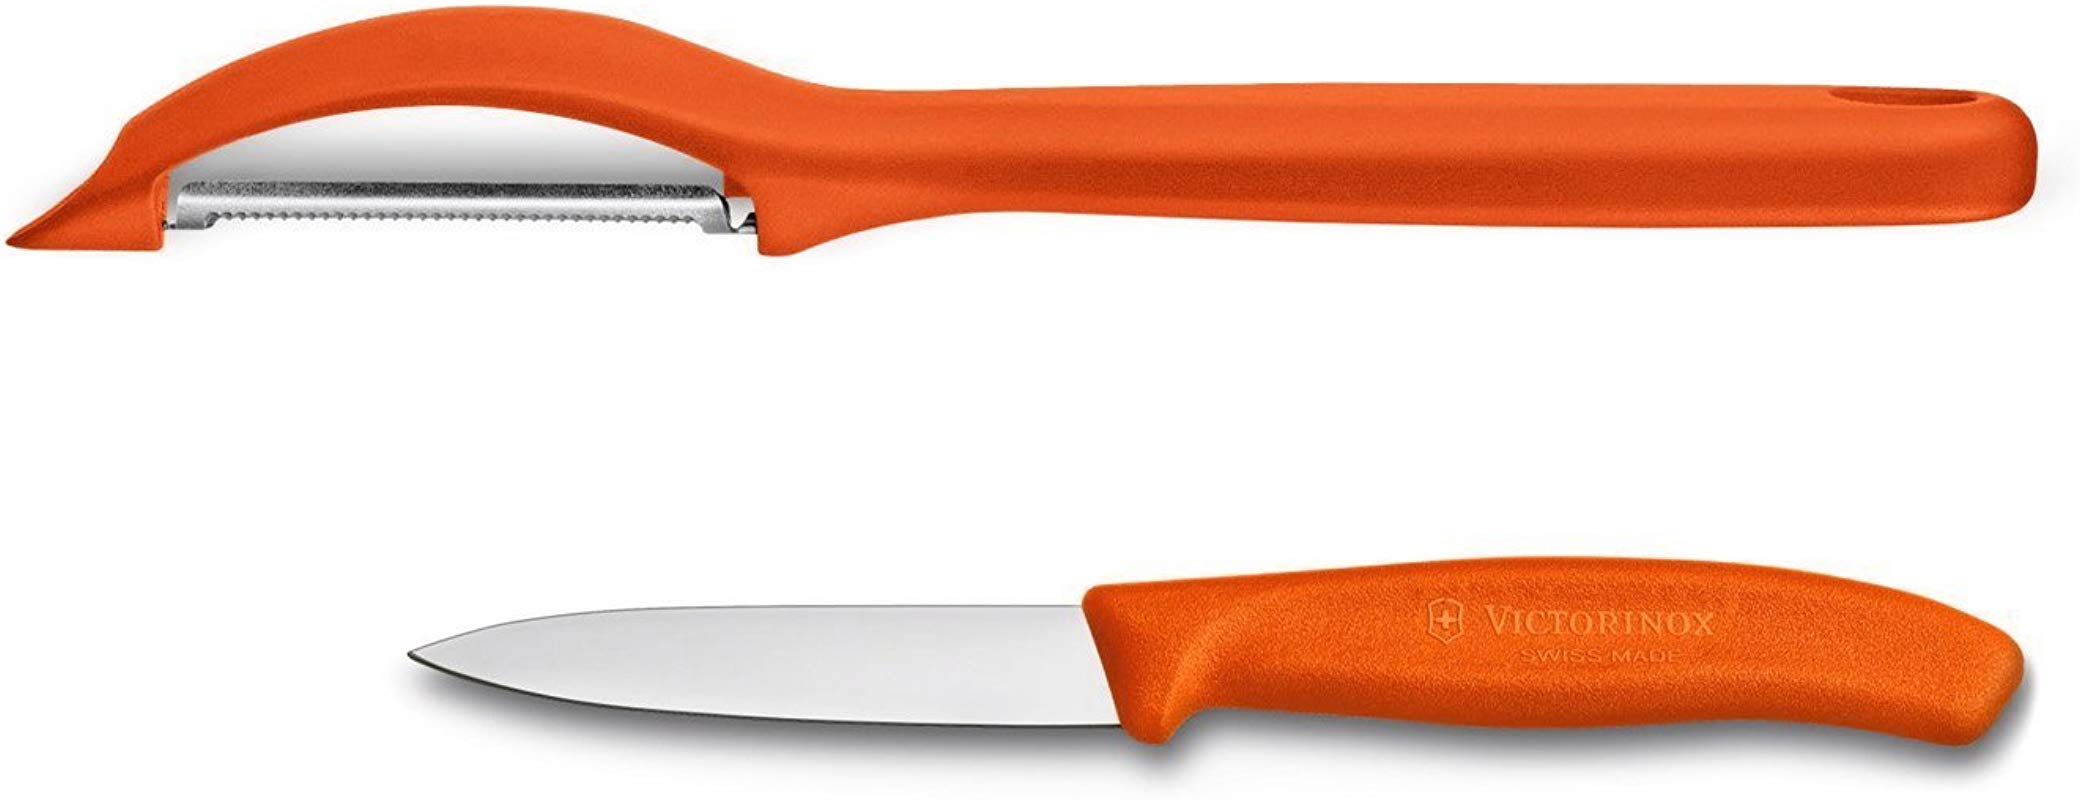 Victorinox VIC 7 6075 7606 9US1 Swiss Classic Pillow Packs Serrated Peeler 3 Paring Orange